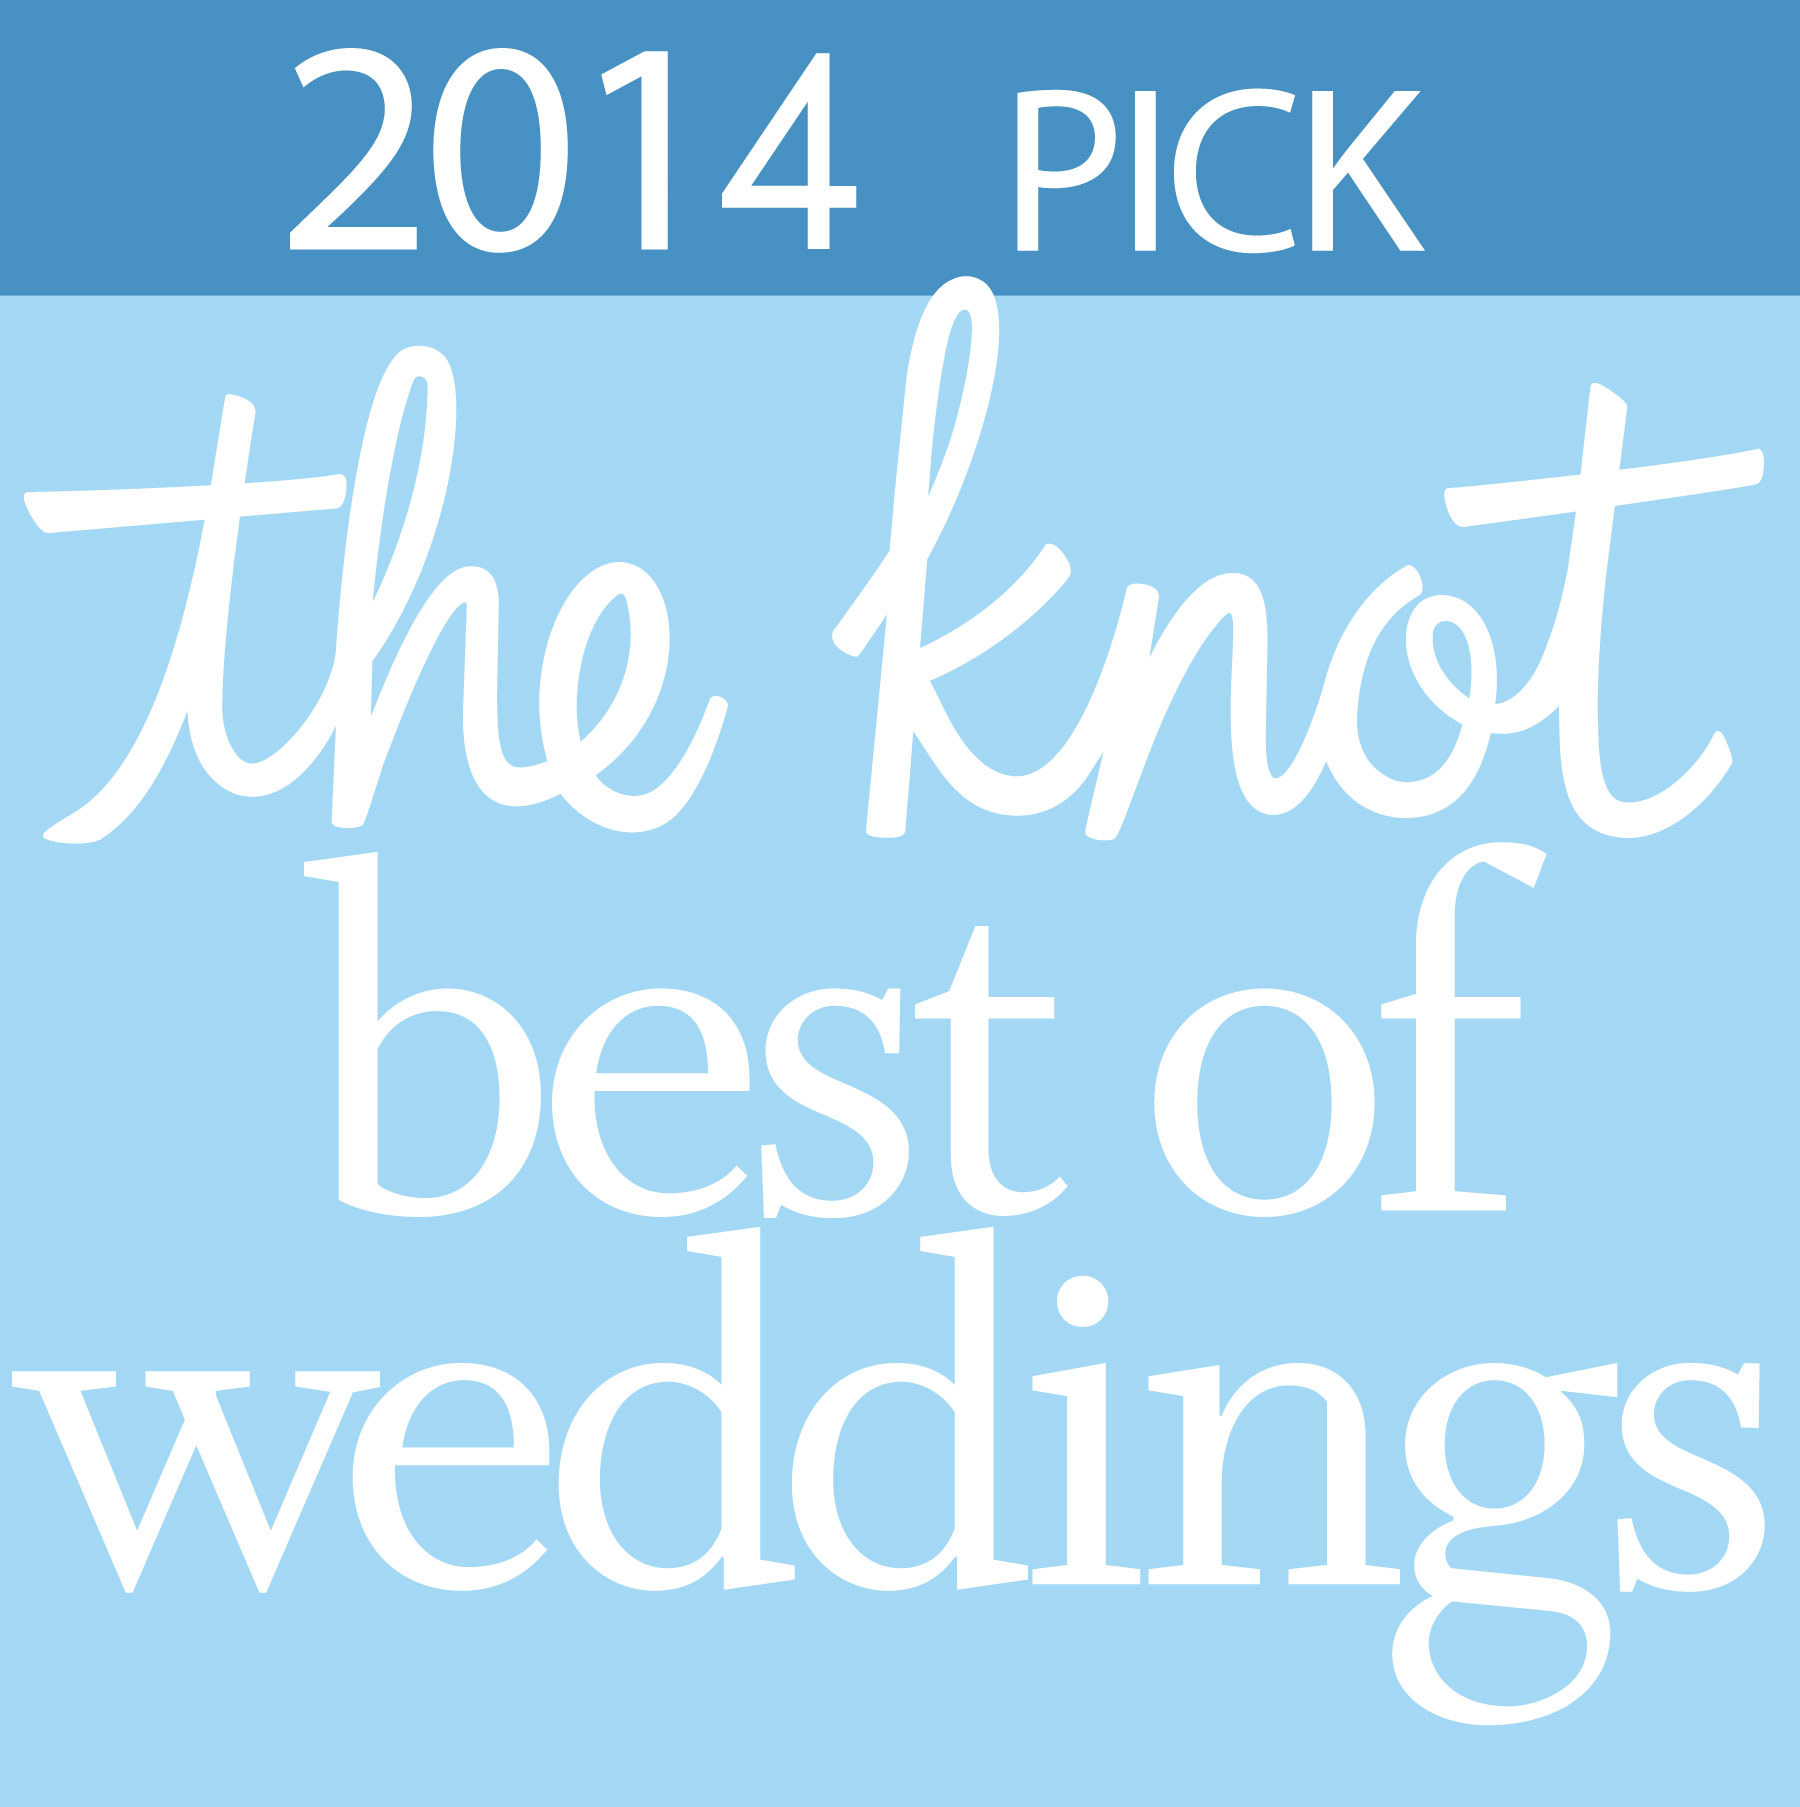 2014 Pick - Best of Weddings on The Knot